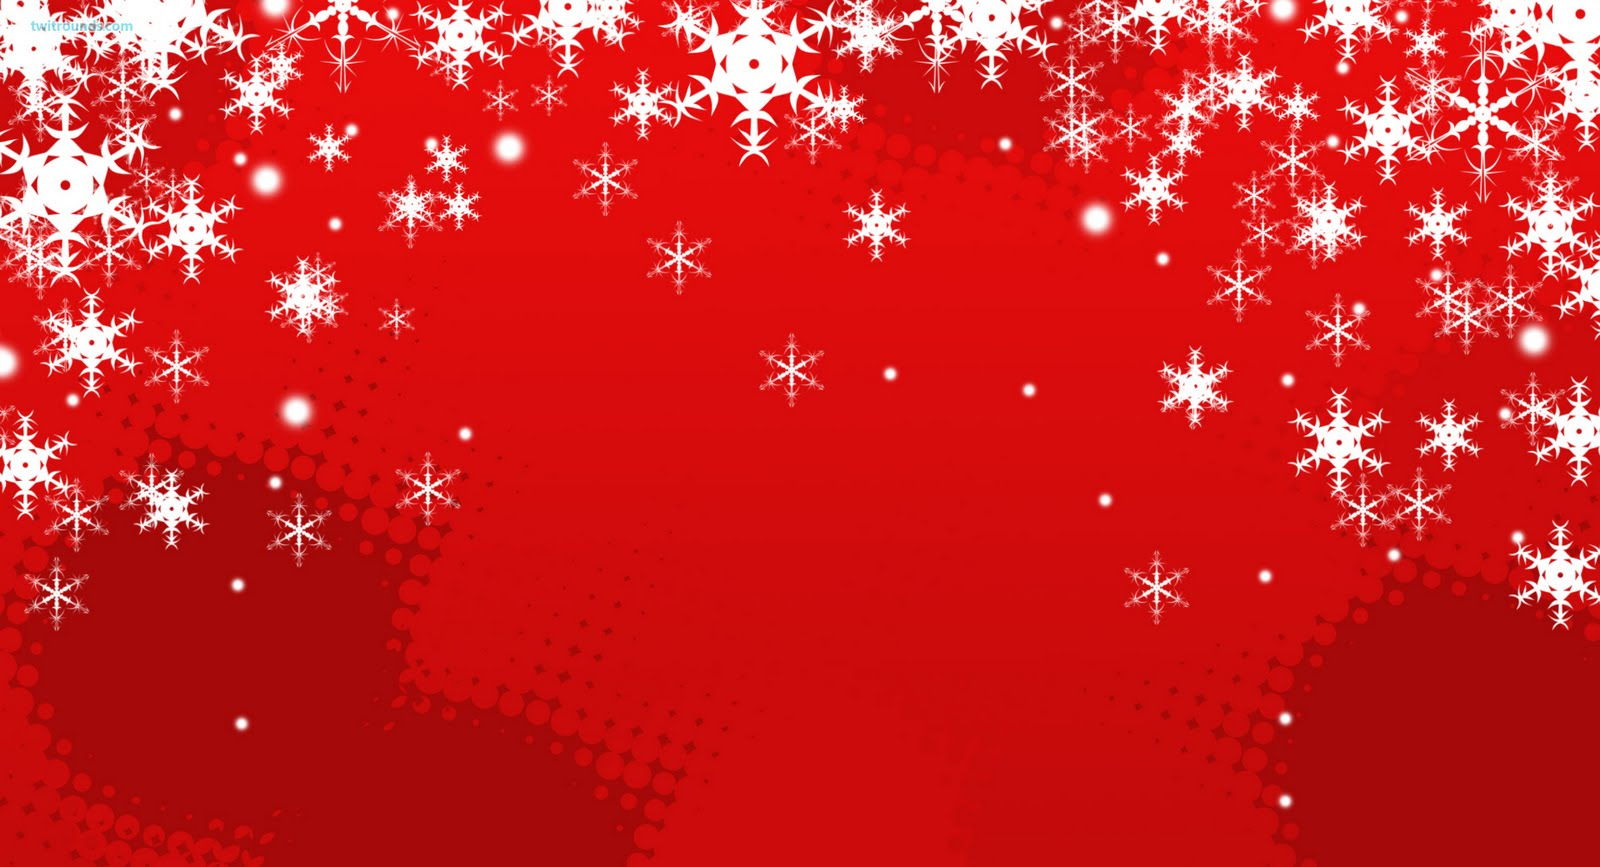 Christmas Snowflakes Clipart Images And Desktop Background Wallpapers